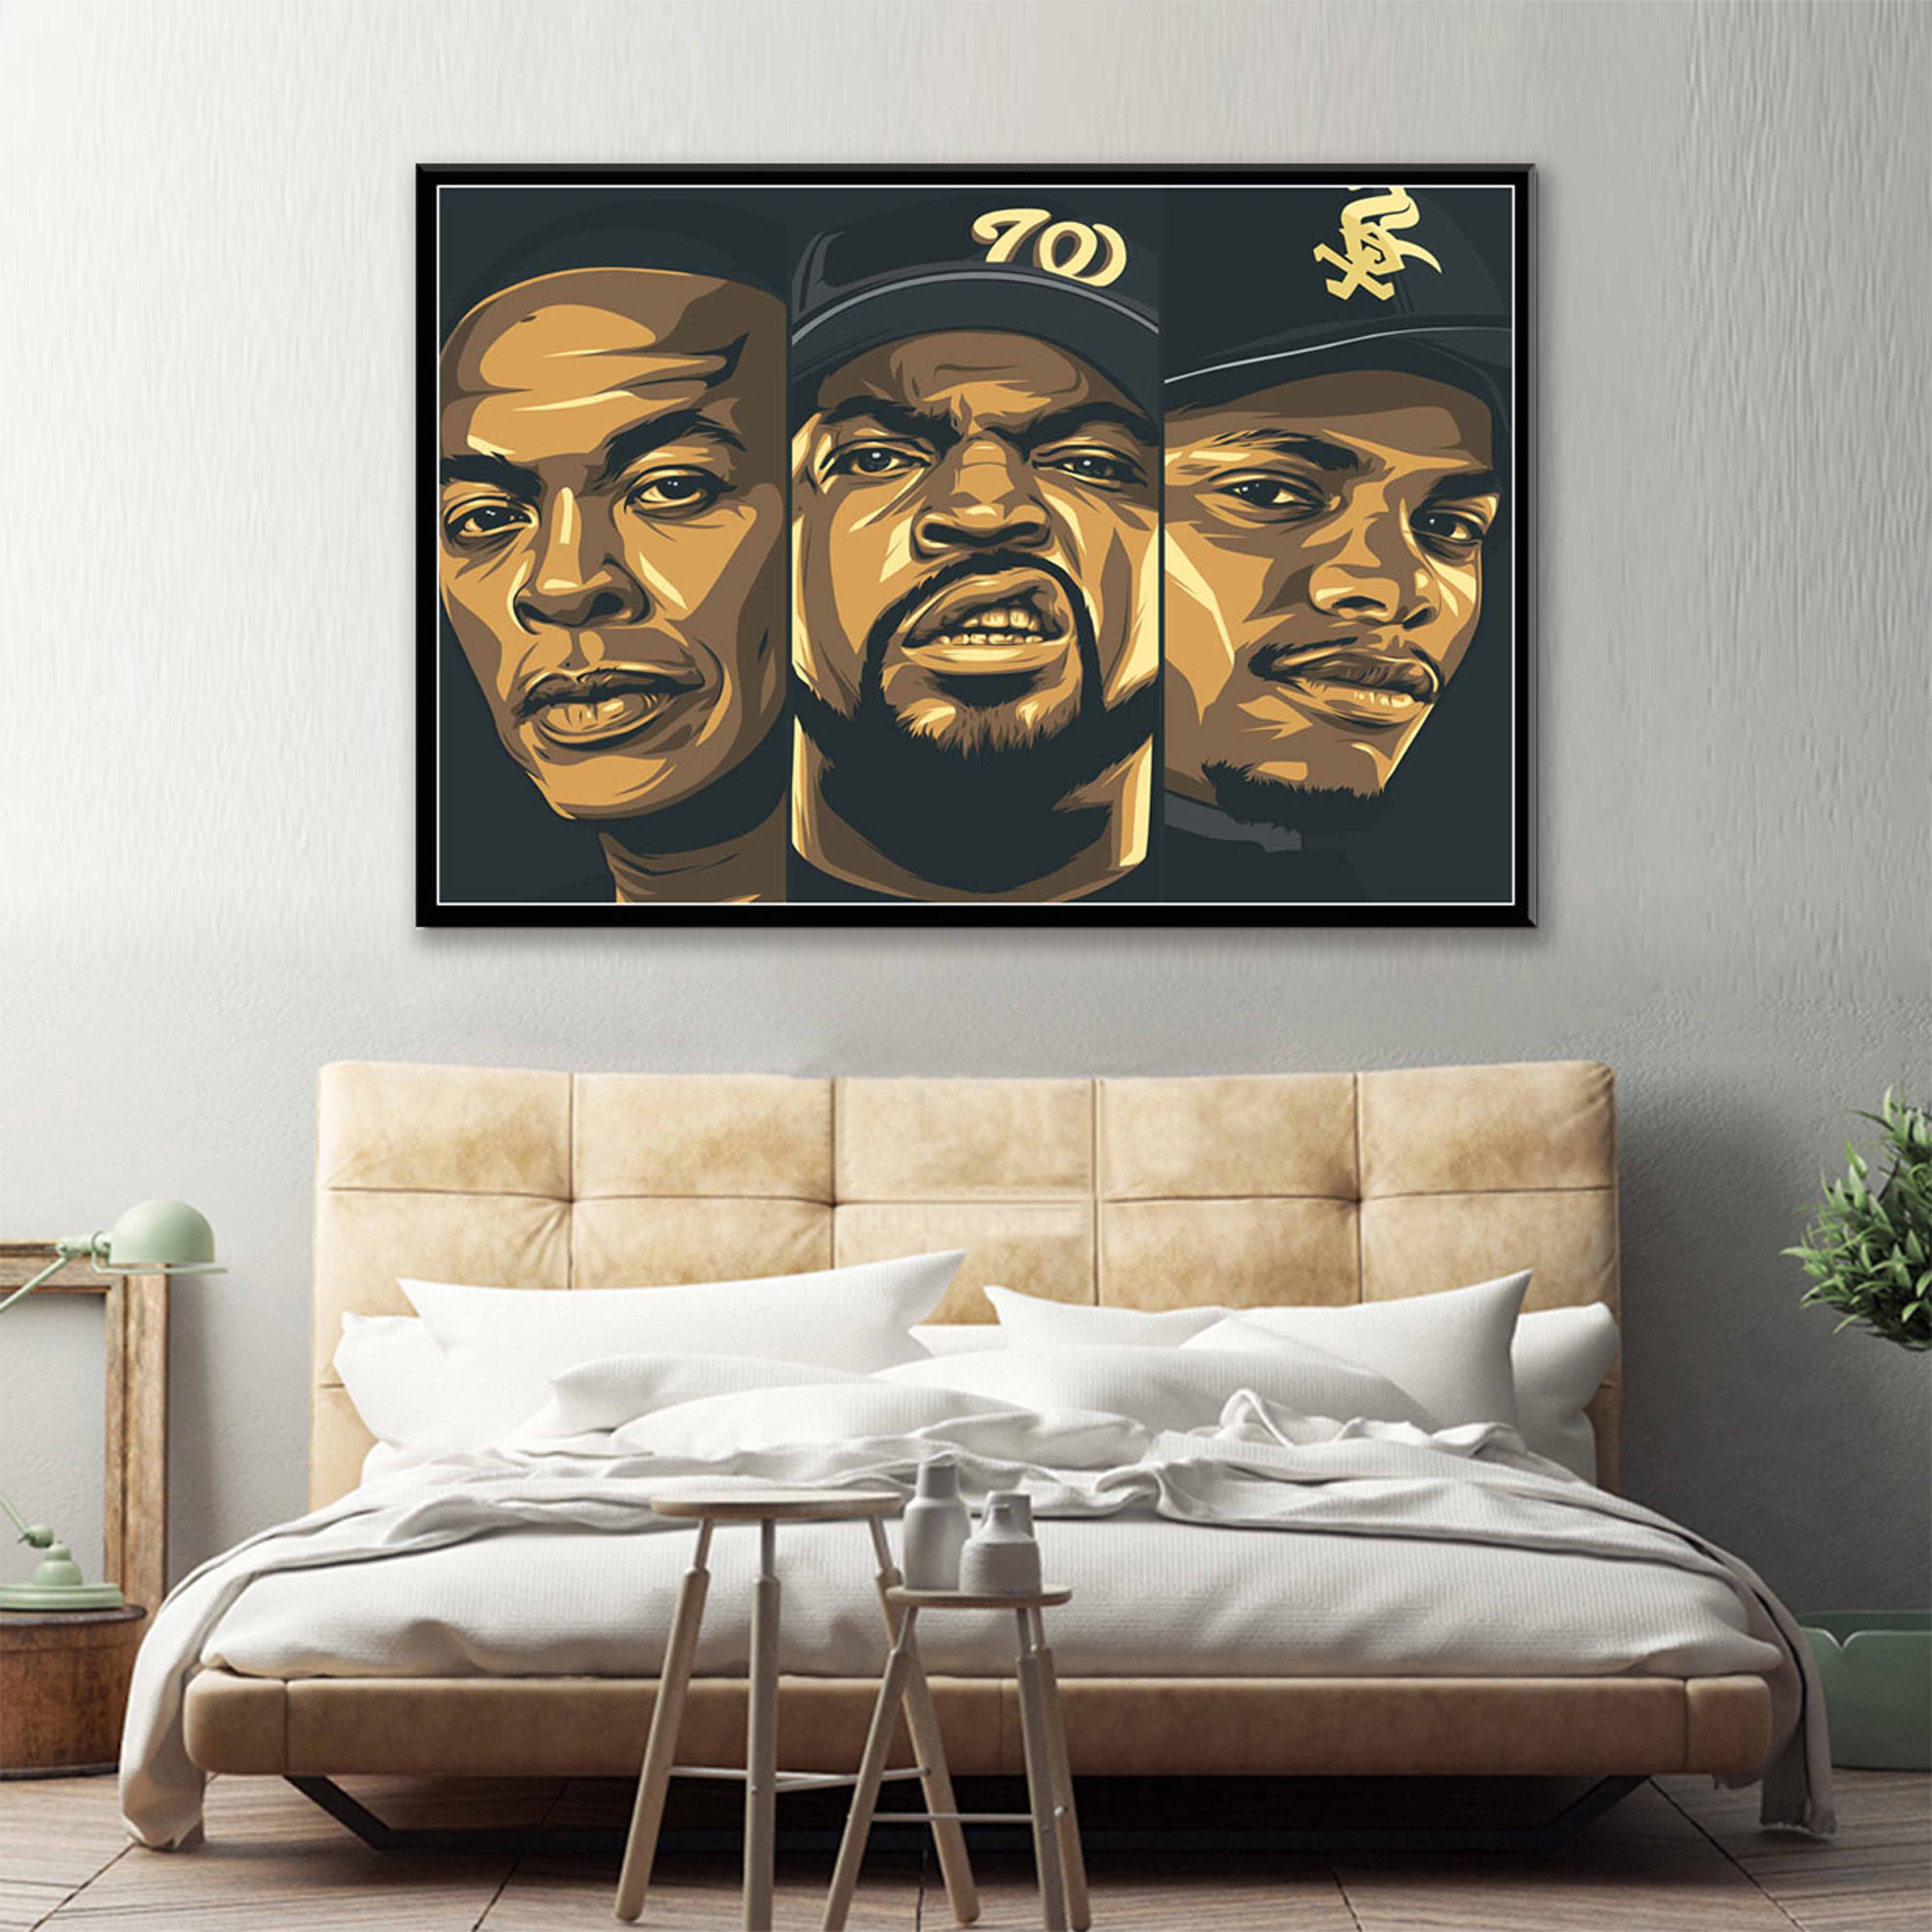 "poster wall art home decor photo print 24x24/"" inches YG Why You Always Hatin"